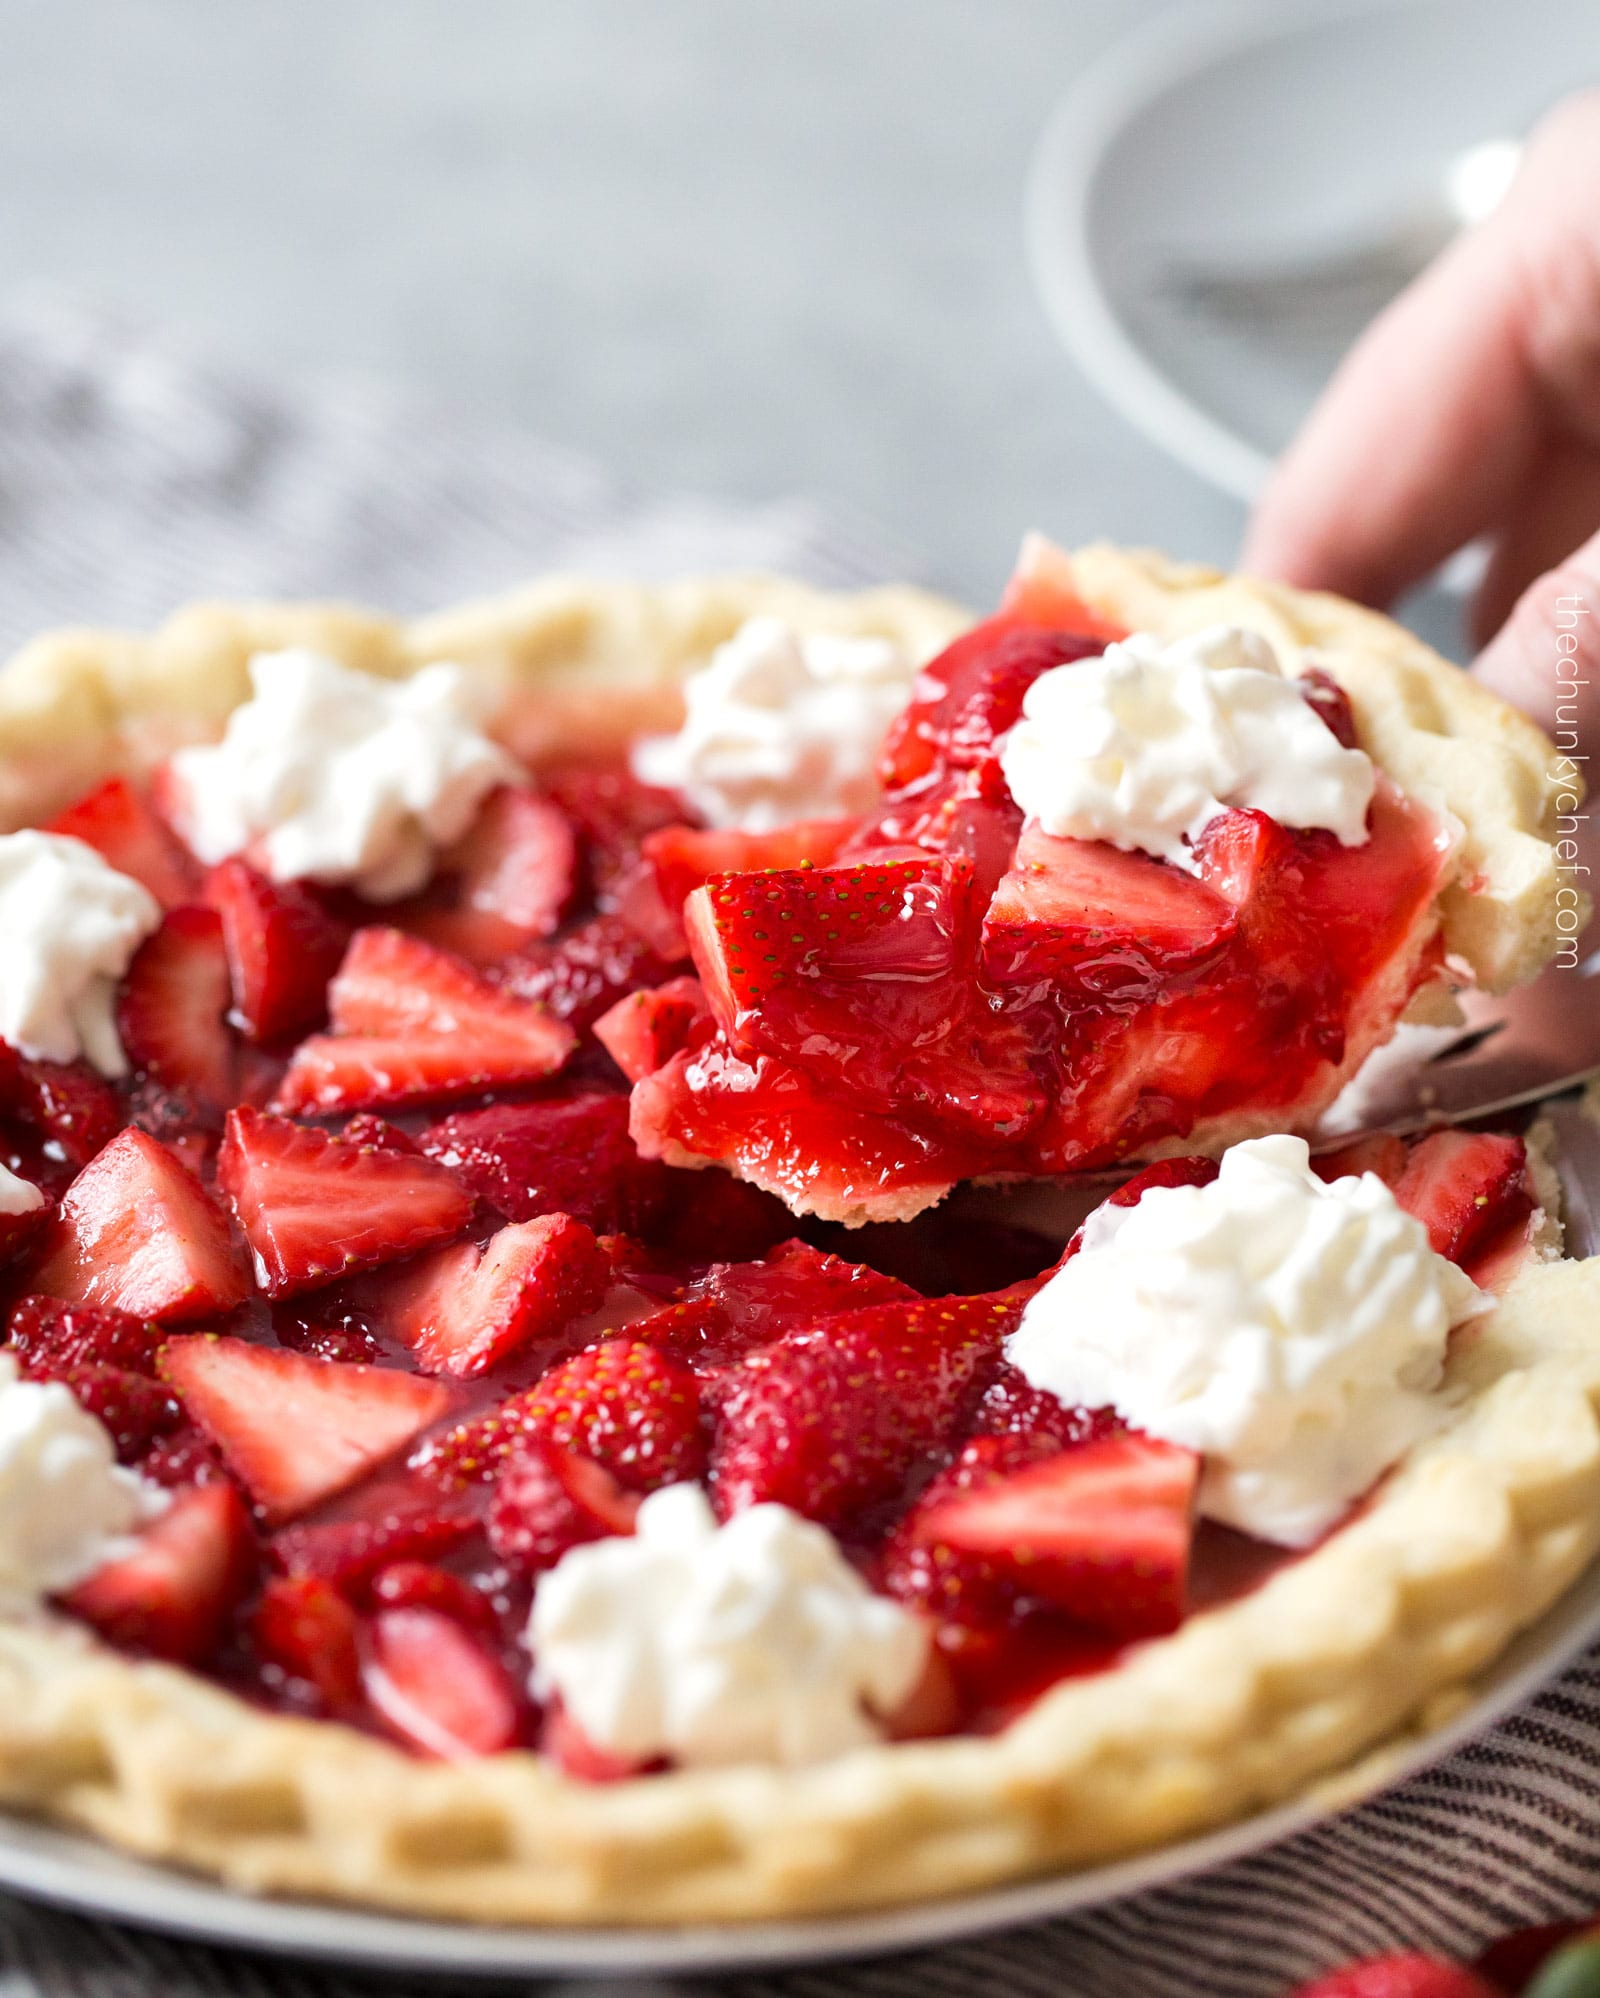 Copycat Frisch's Big Boy Strawberry Pie   This fresh strawberry pie tastes just like the pies from Frisch's Big Boy or Shoney's. It's easy to make, uses just 6 simple ingredients, and a frozen pie crust, for the easiest, tastiest strawberry pie ever!   http://thechunkychef.com